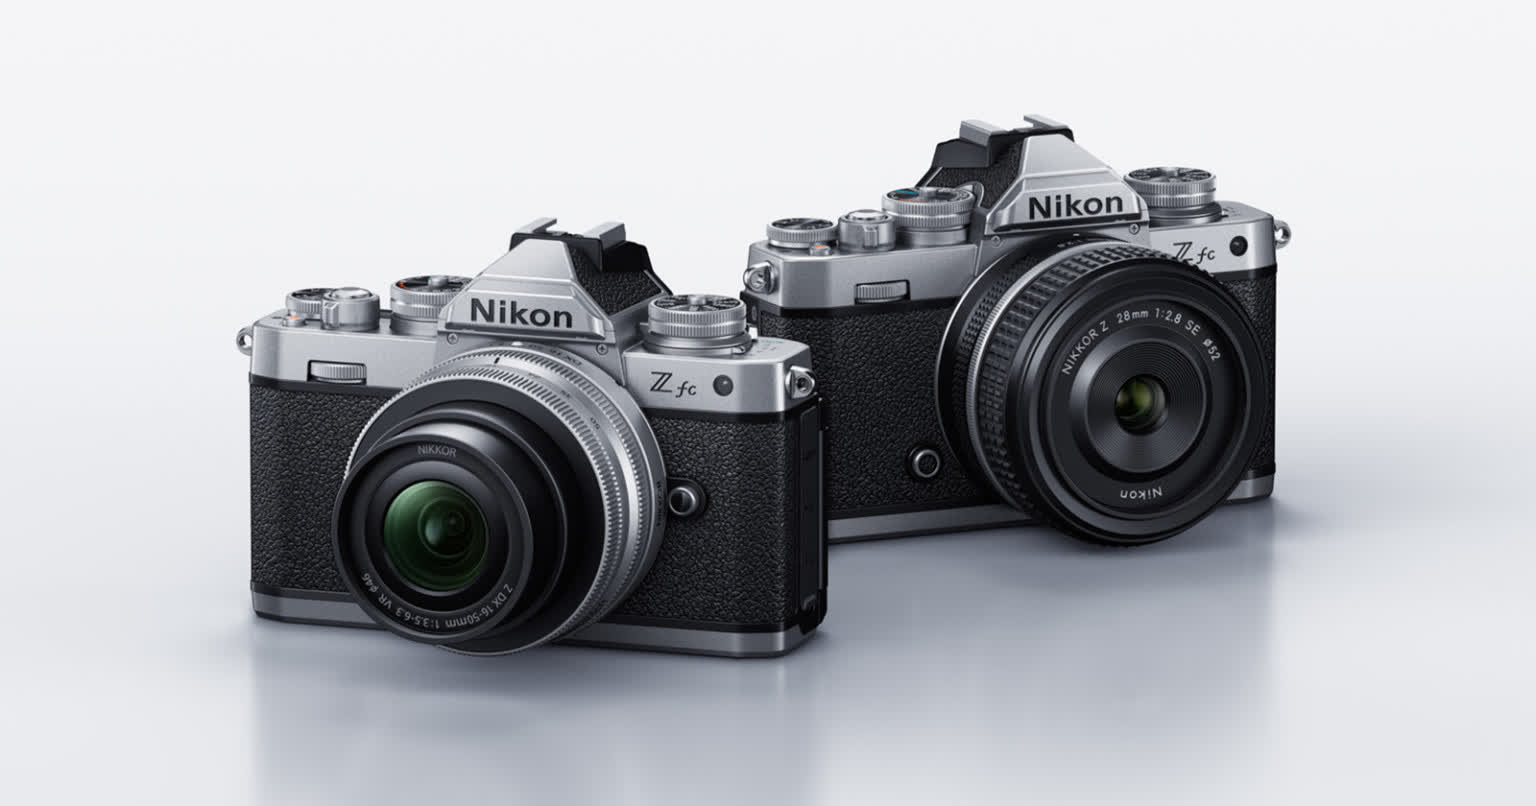 Nikon's Z fc mirrorless camera is inspired by a classic film camera from the 80s